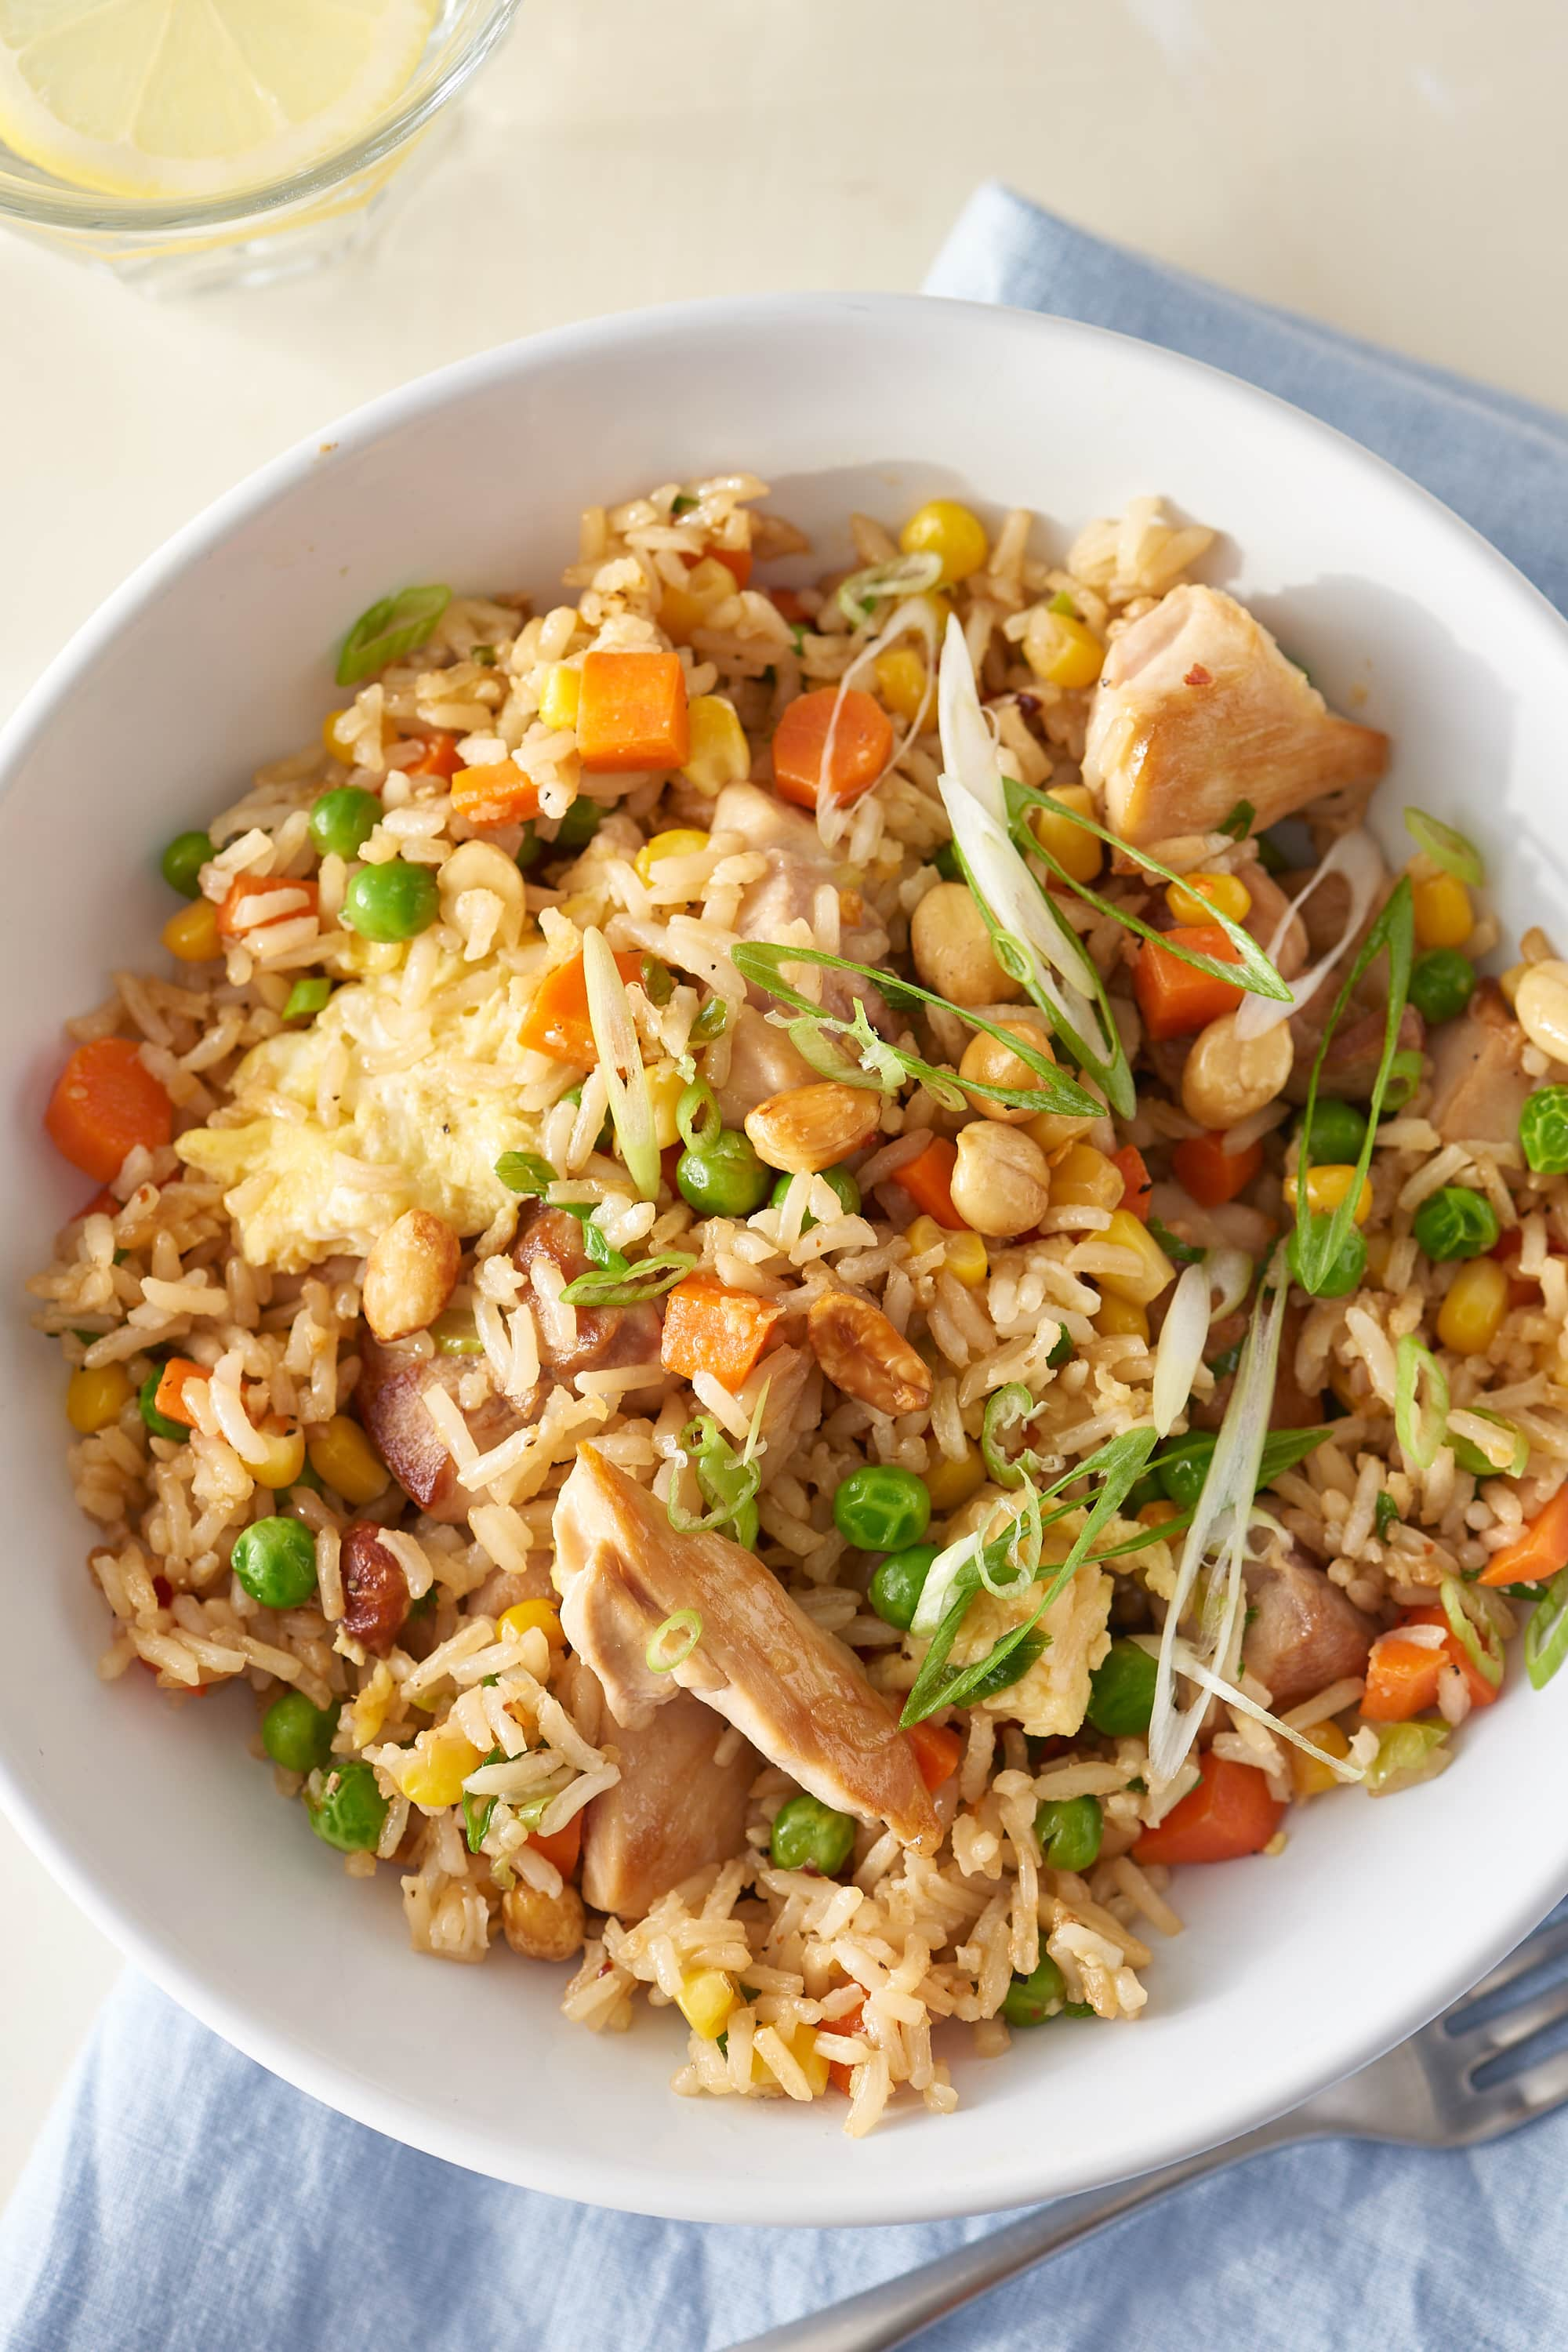 20 Tasty Ways to Turn Rice Into a Meal